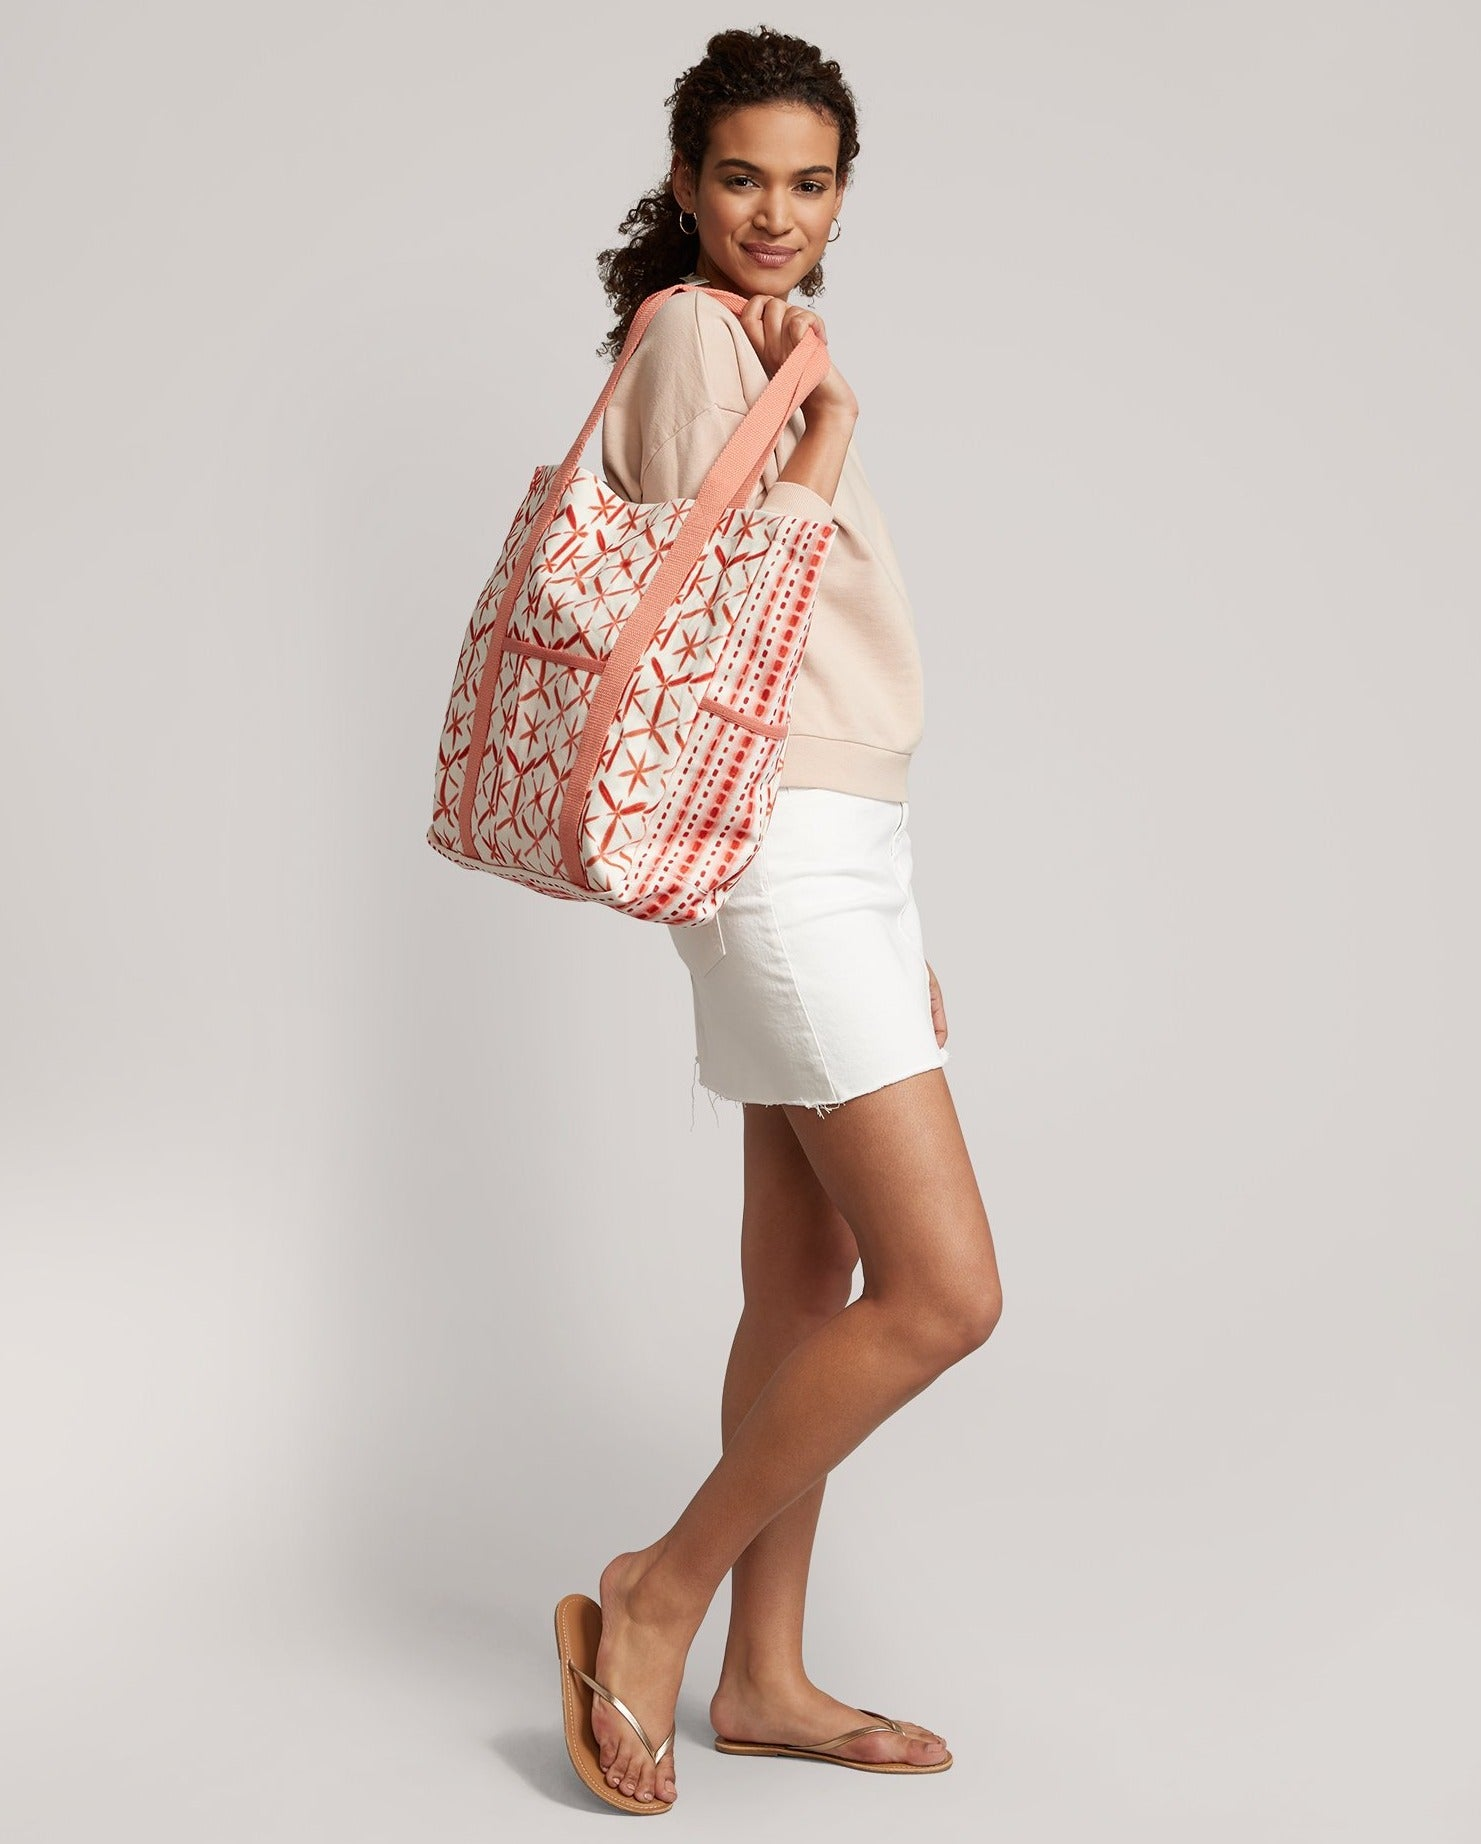 Sunset Coral - Shibori Beach Tote Bag